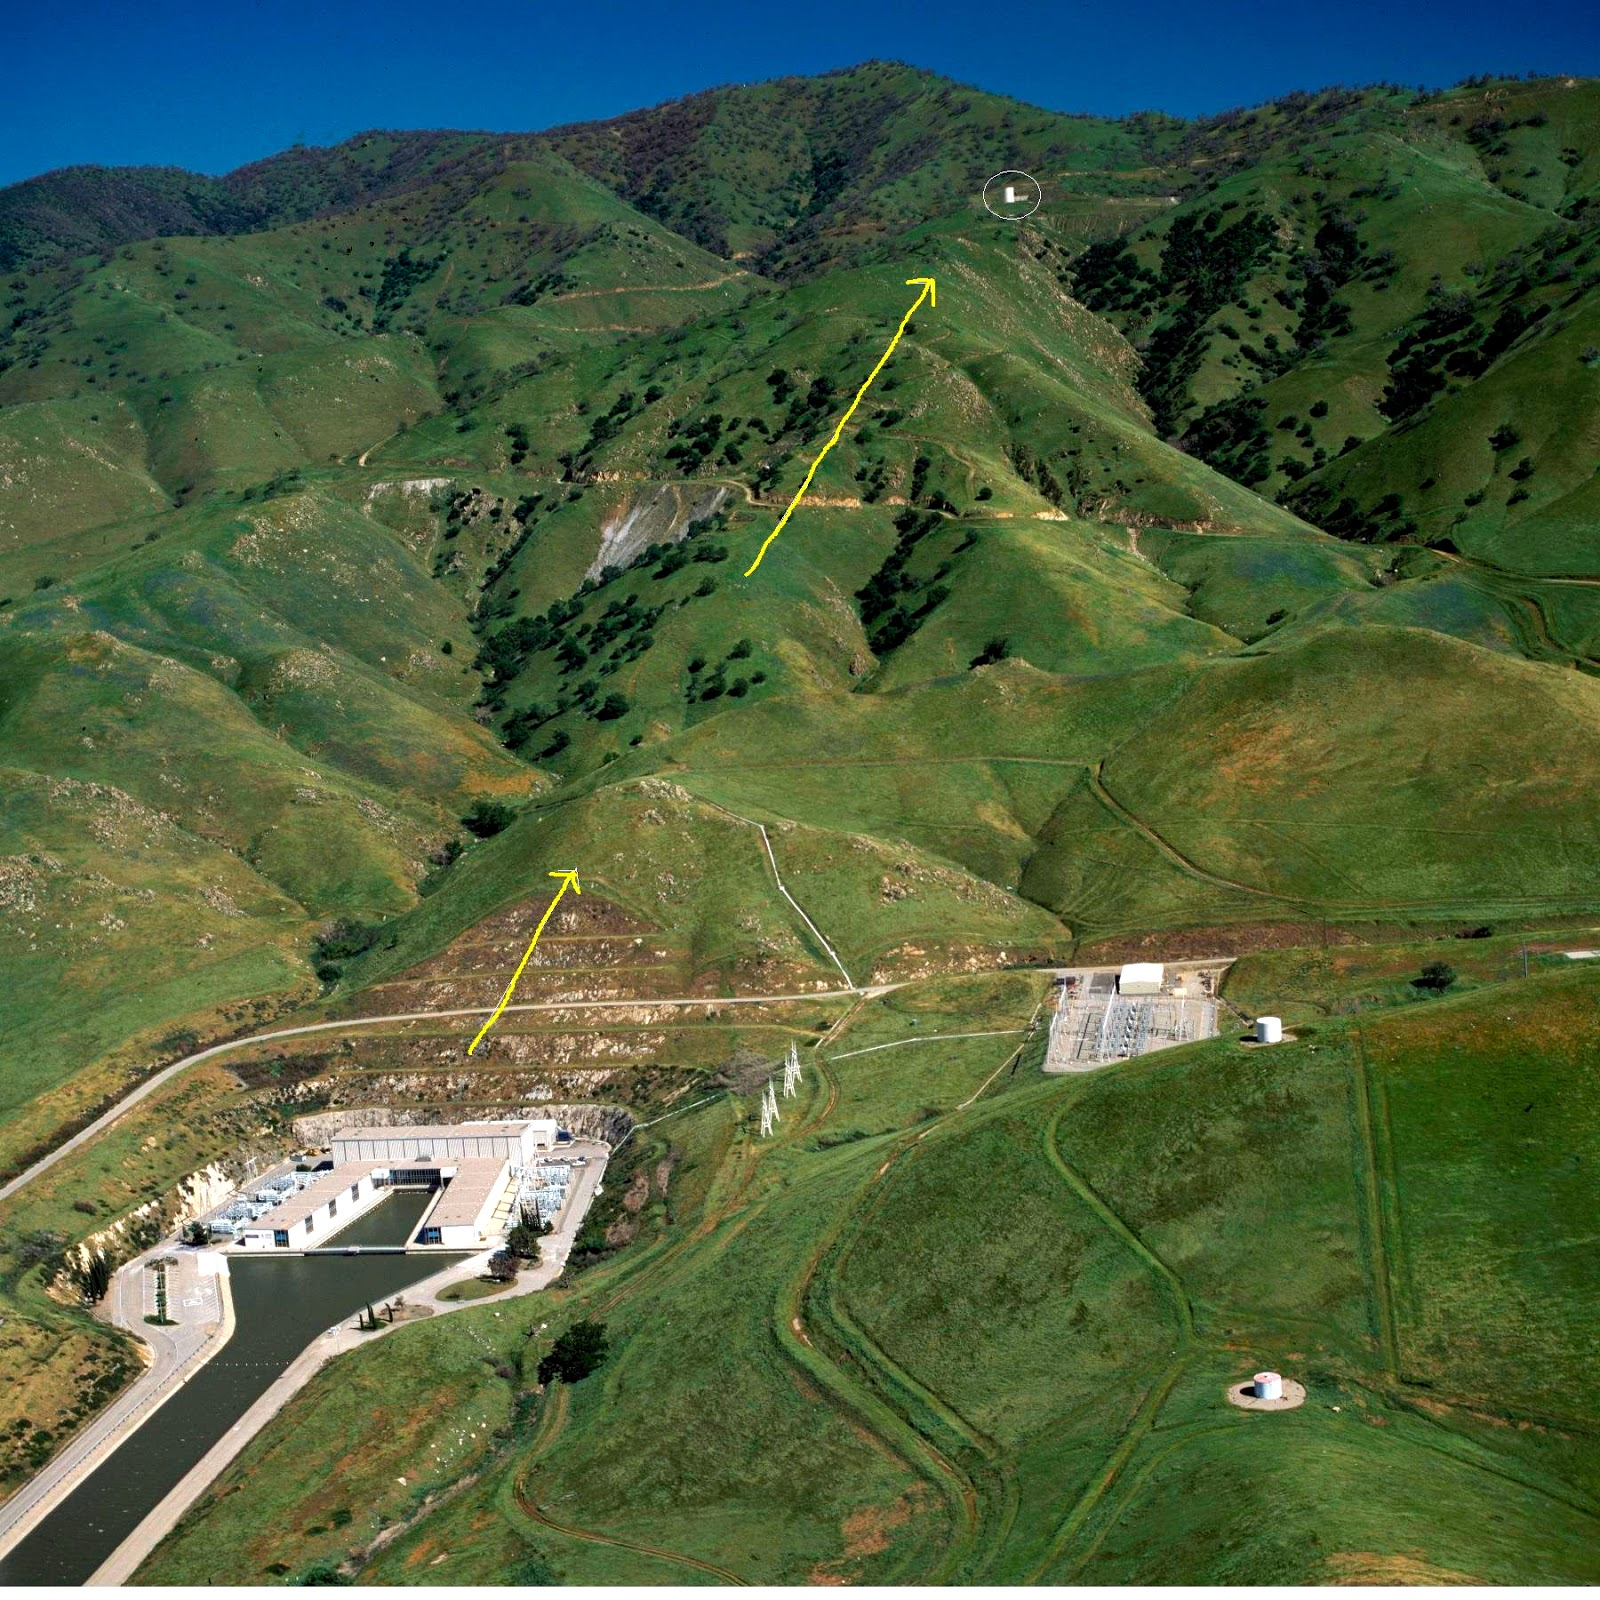 The Edmonston Pumping Plant is one of the facilities responsible for pumping water over the Tehachapi Mountains.